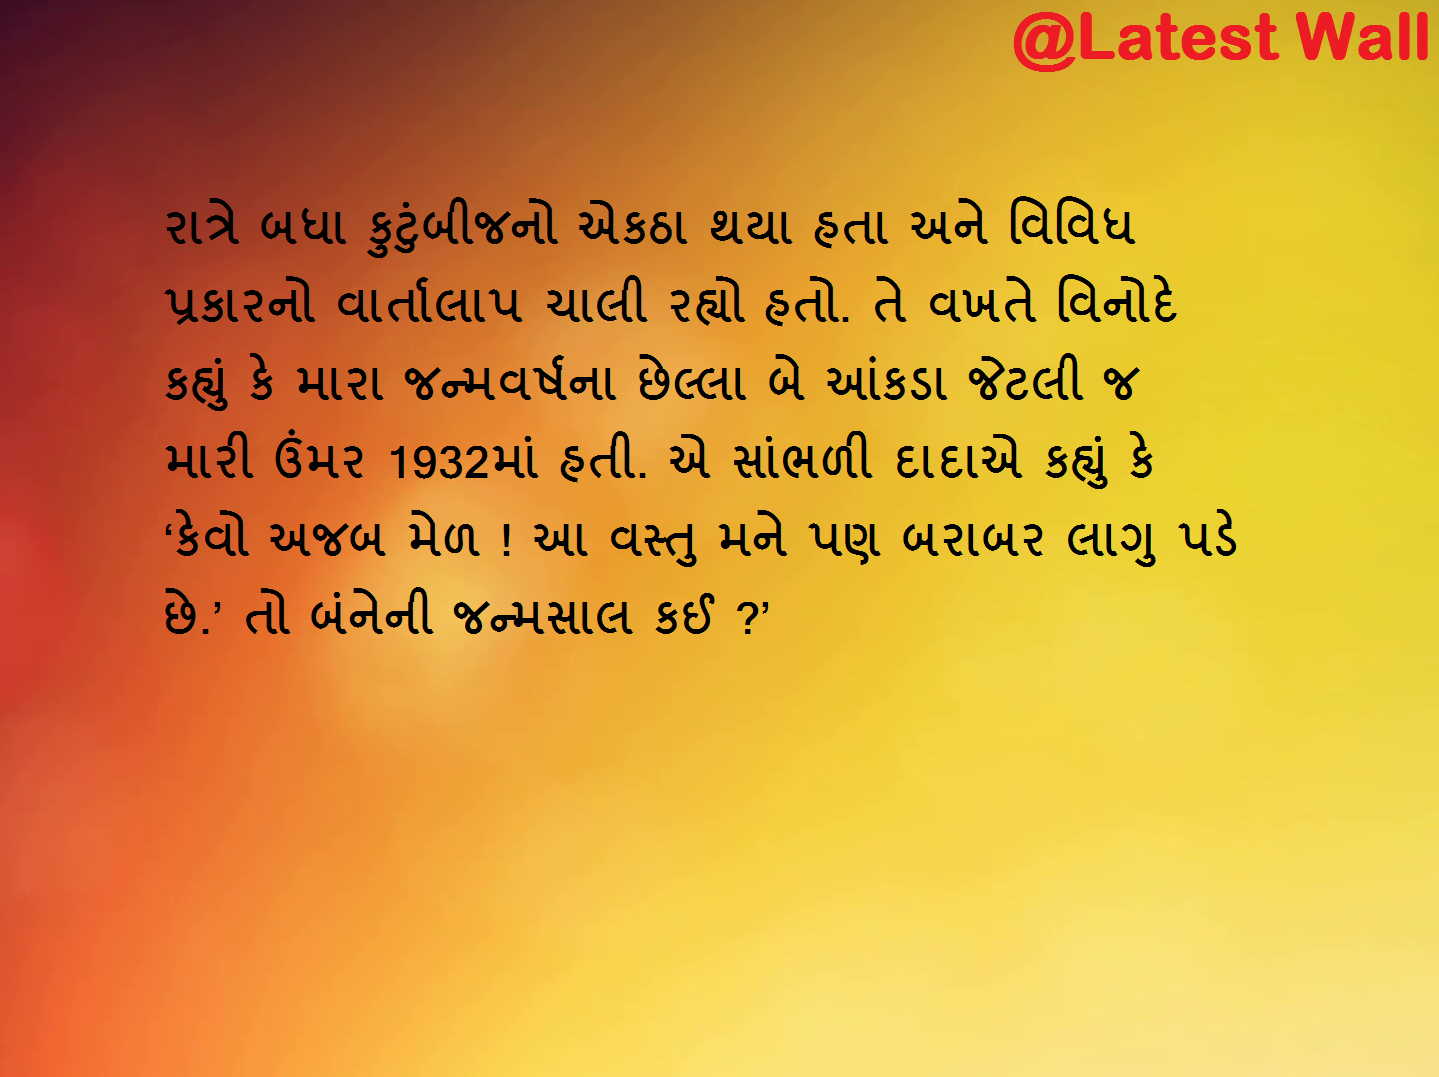 Gujarati Koyda Birth